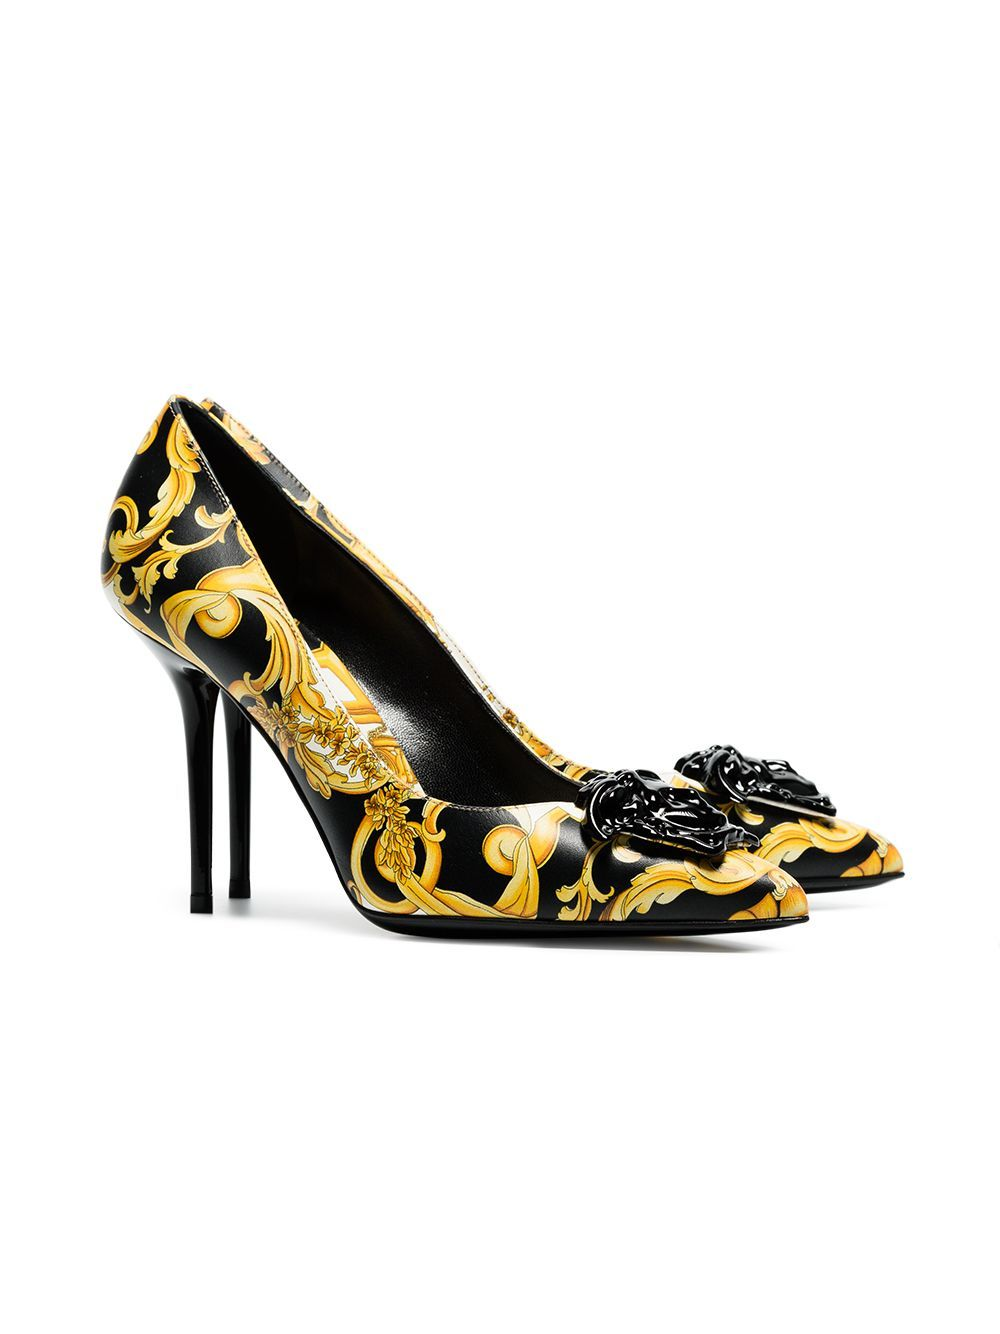 20a38bfd6b Versace black, yellow and white barocco 95 leather pumps | shoes in ...